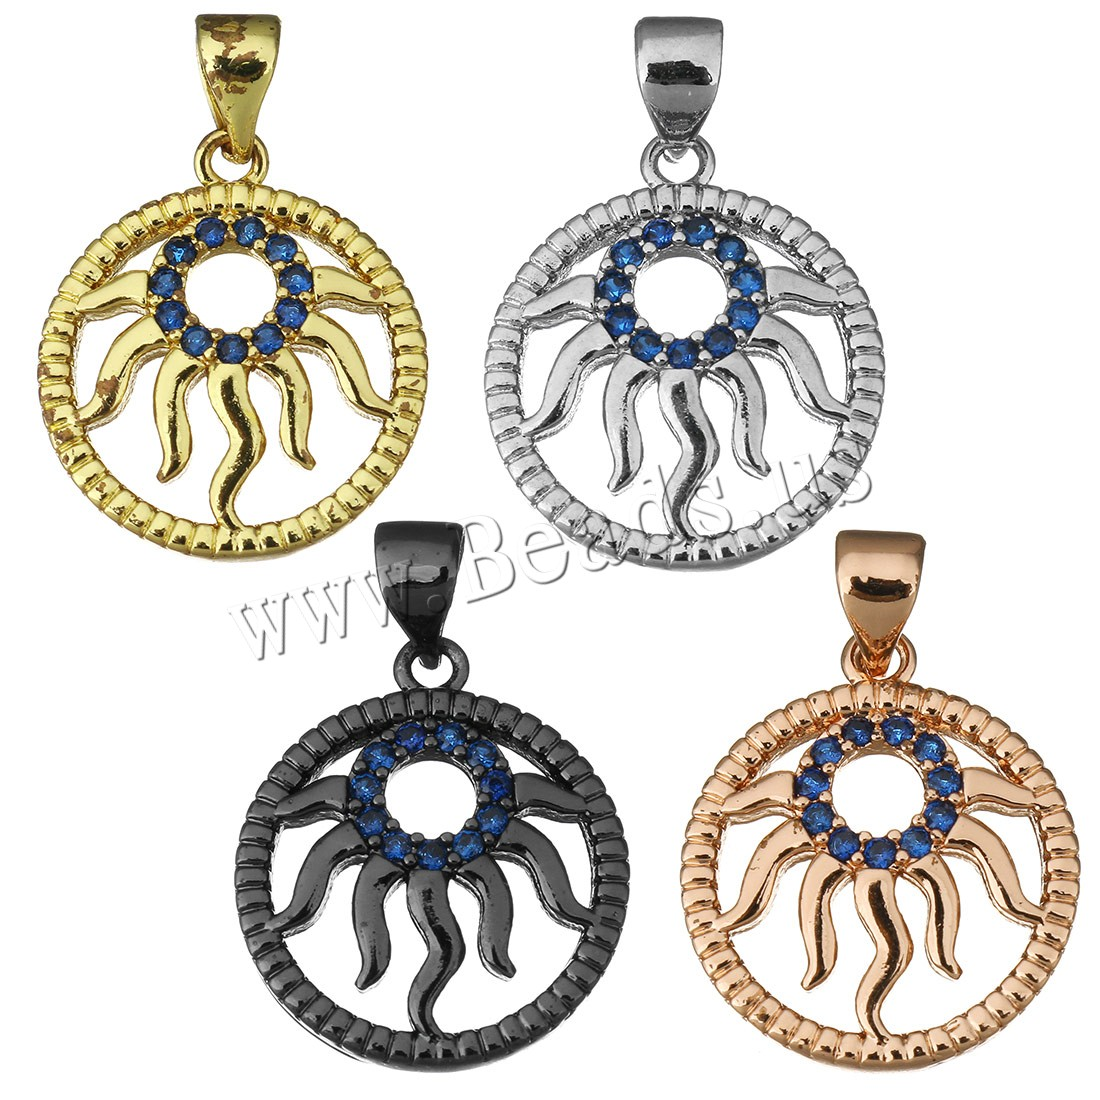 Buy Cubic Zirconia Micro Pave Brass Pendant plated micro pave cubic zirconia colors choice 16x18.50x3mm Hole:Approx 3.5x4.5mm 2 Sold Lot